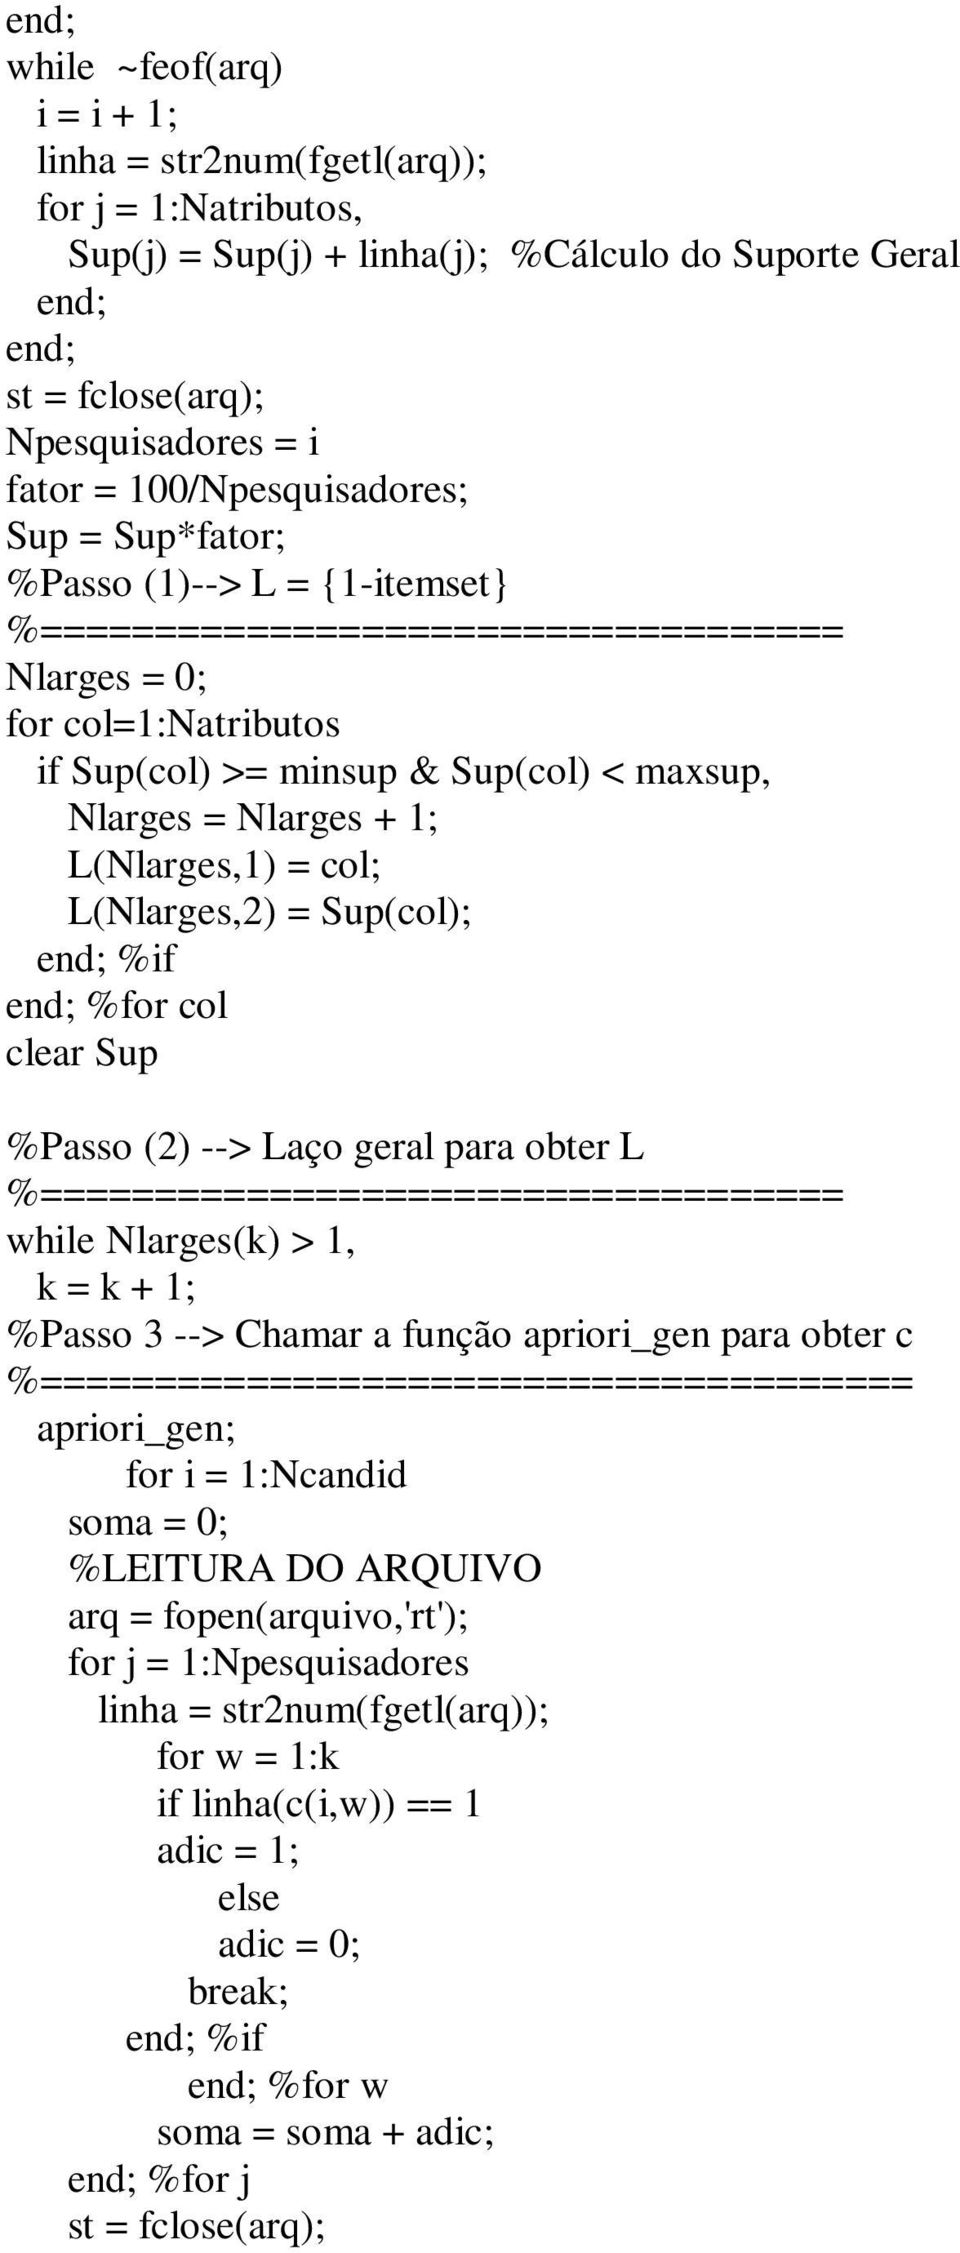 + 1; L(Nlarges,1) = col; L(Nlarges,2) = Sup(col); end; %if end; %for col clear Sup %Passo (2) --> Laço geral para obter L %=================================== while Nlarges(k) > 1, k = k + 1; %Passo